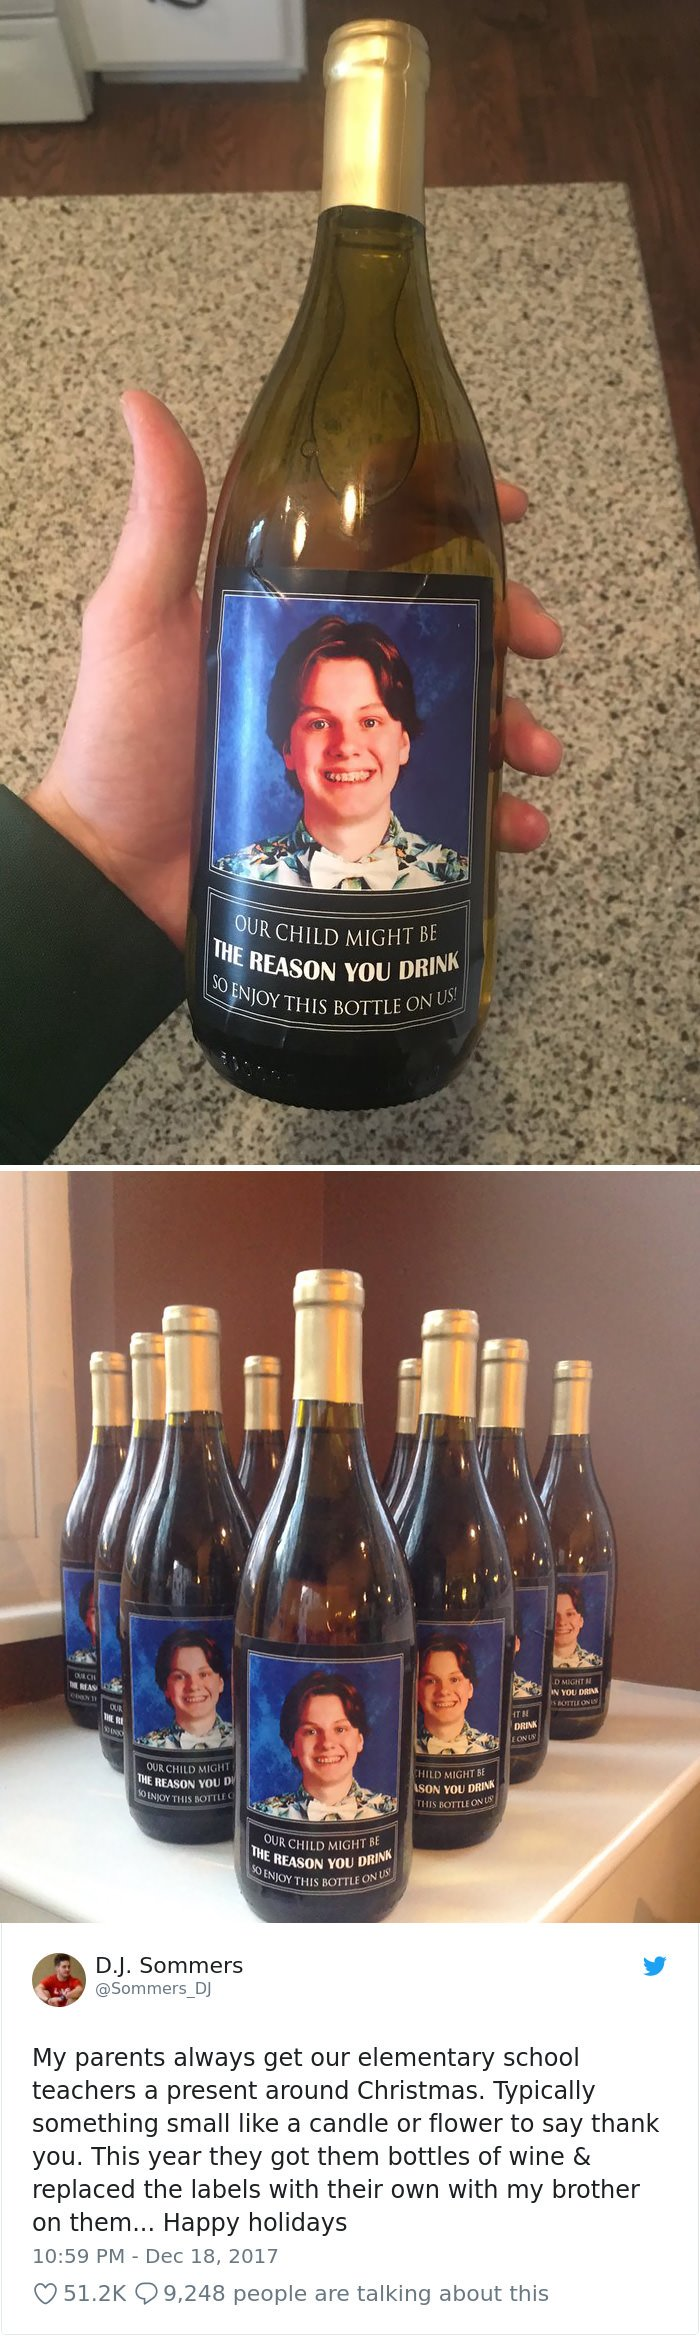 Our Child Might Be The Reason You Drink